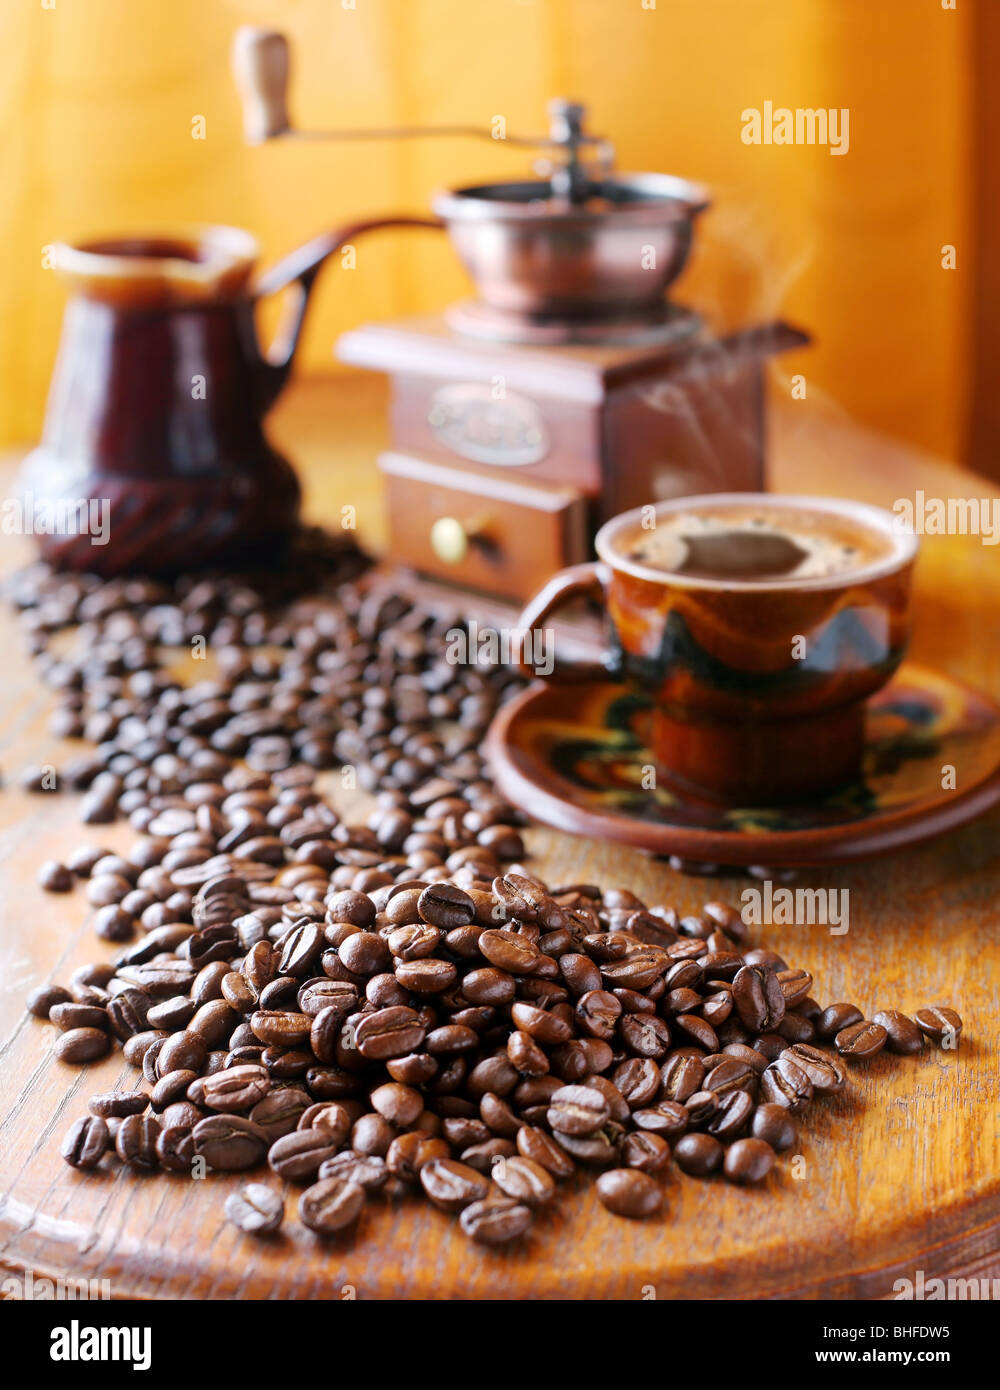 Still life with coffee beans, and accessories - Stock Image